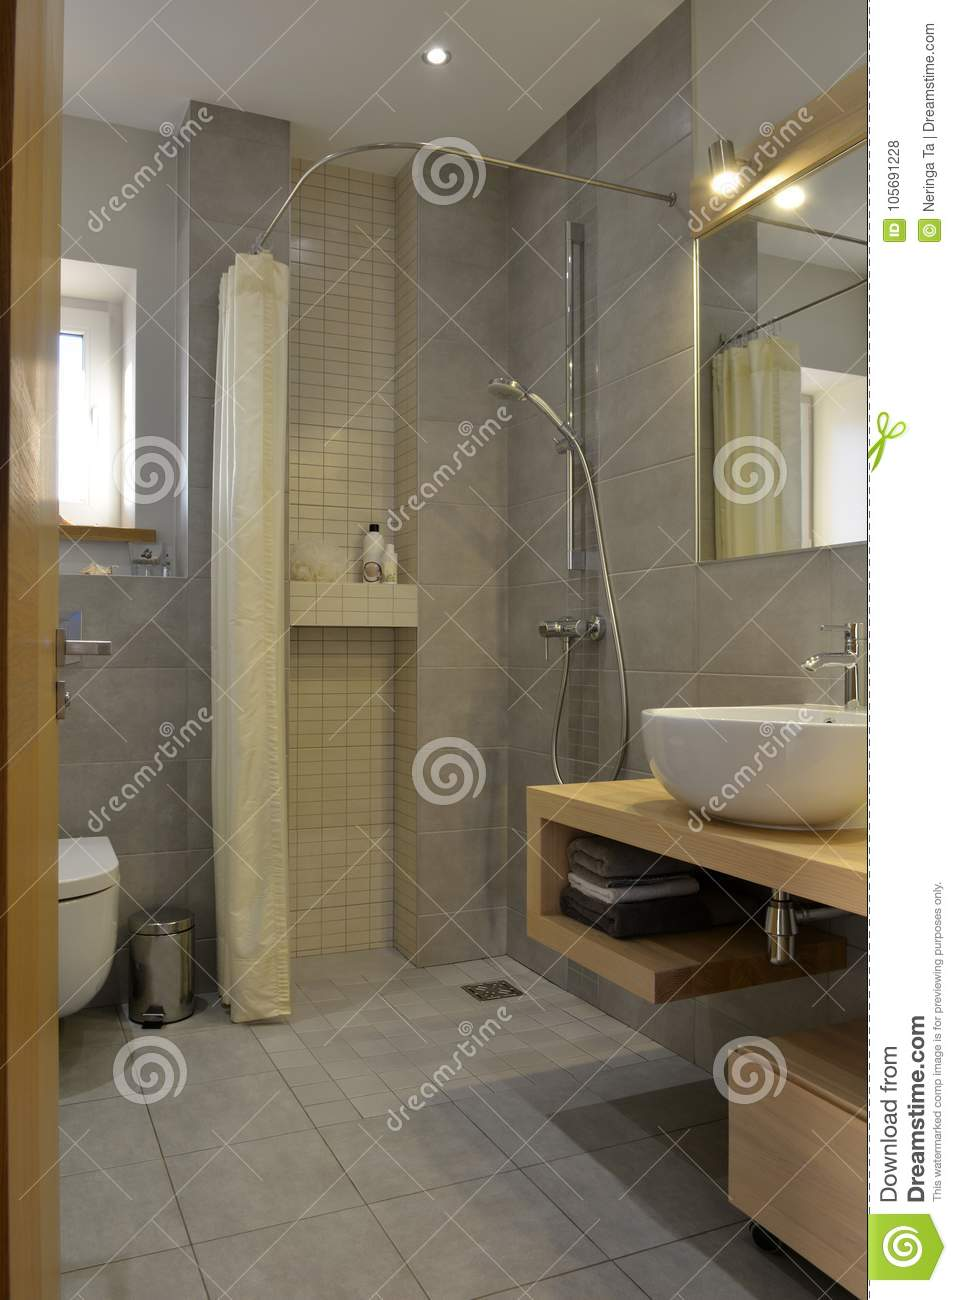 Stone Bathroom Designs Modern Bathroom Design Stock Photo Image Of Floors 105691228